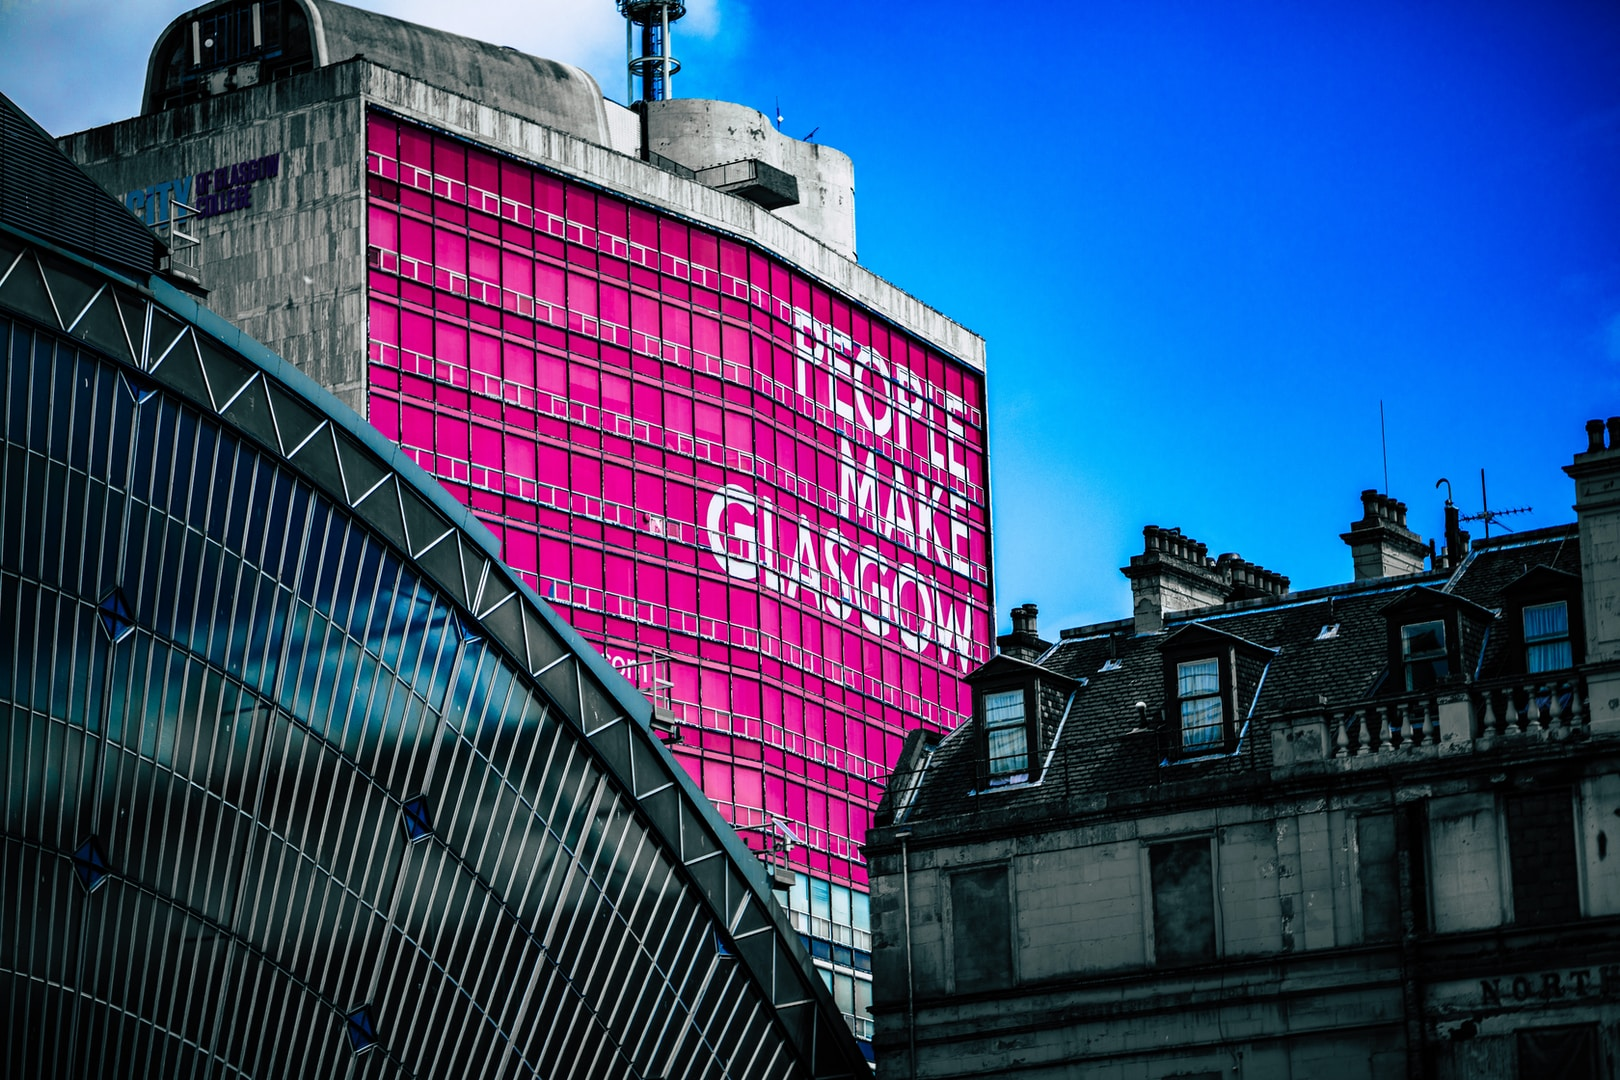 low angle view of building with People make Glasgow billboard